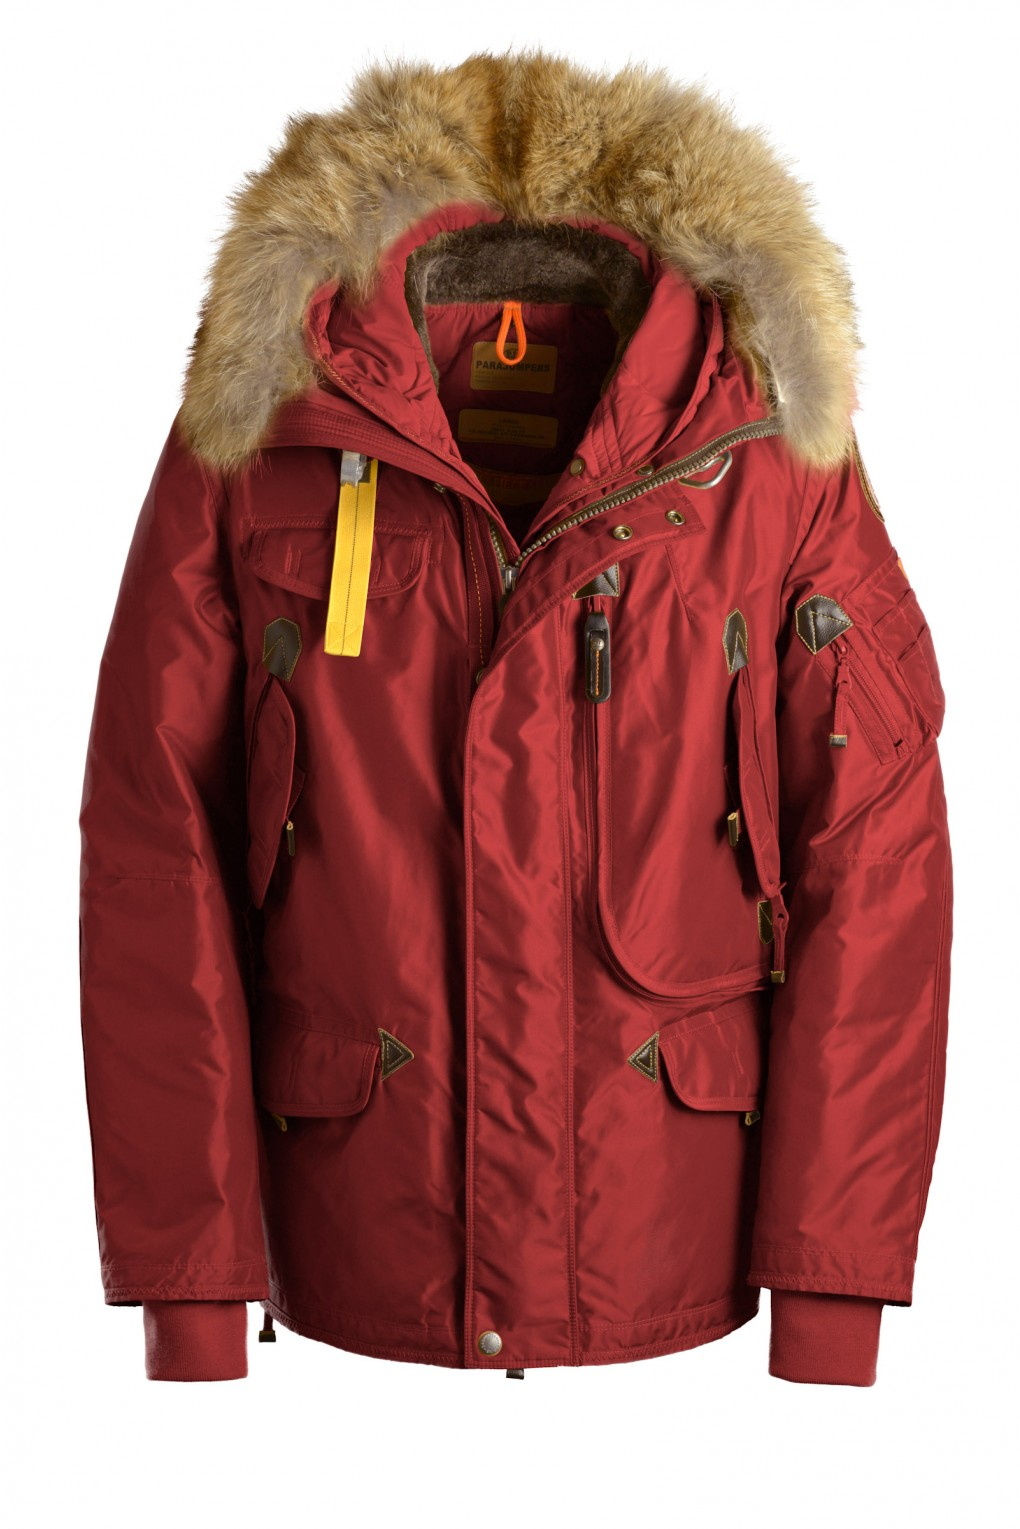 parajumpers RIGHT HAND man outerwear Red